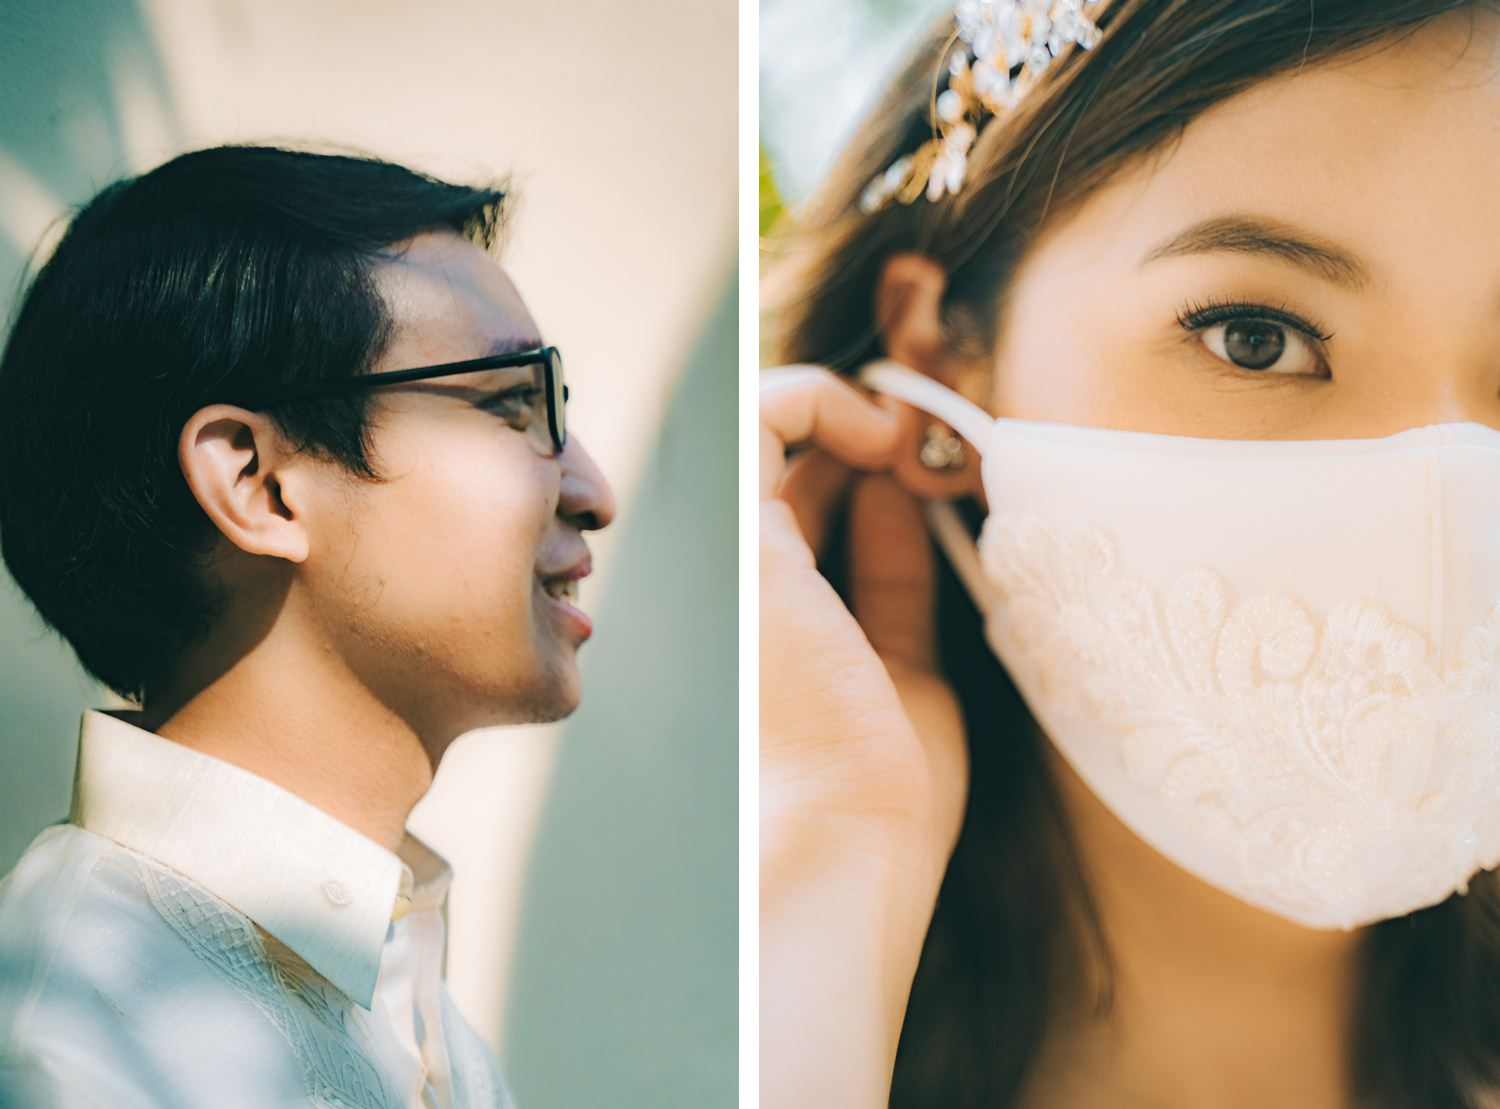 Oak St. Studios - Jan and Marielle - Intimate Wedding Photographer Manila Philippines